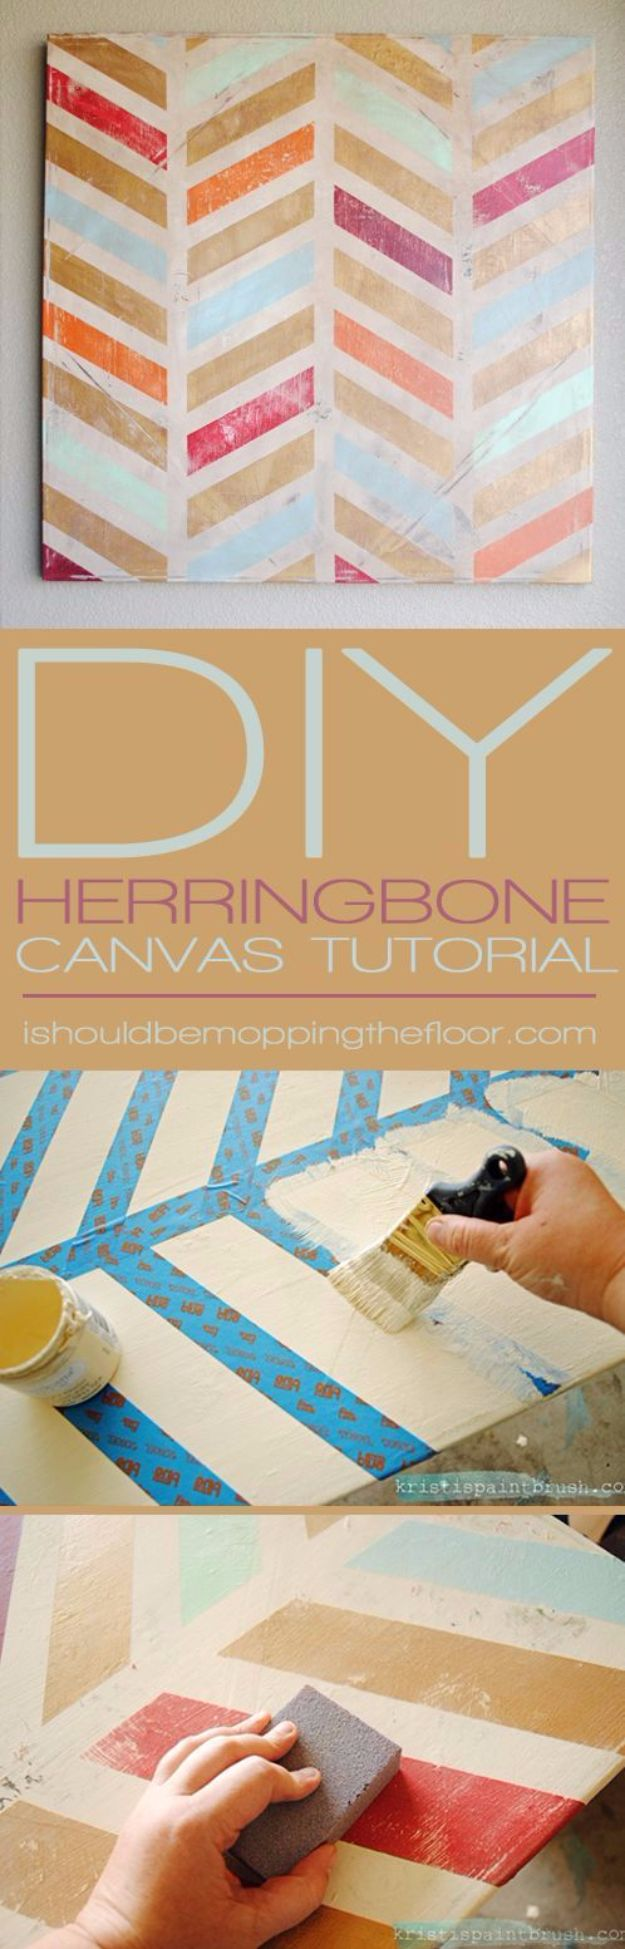 DIY Canvas Painting Ideas - DIY Herringbone Canvas Art - Cool and Easy Wall Art Ideas You Can Make On A Budget - Creative Arts and Crafts Ideas for Adults and Teens - Awesome Art for Living Room, Bedroom, Dorm and Apartment Decorating http://diyjoy.com/diy-canvas-painting